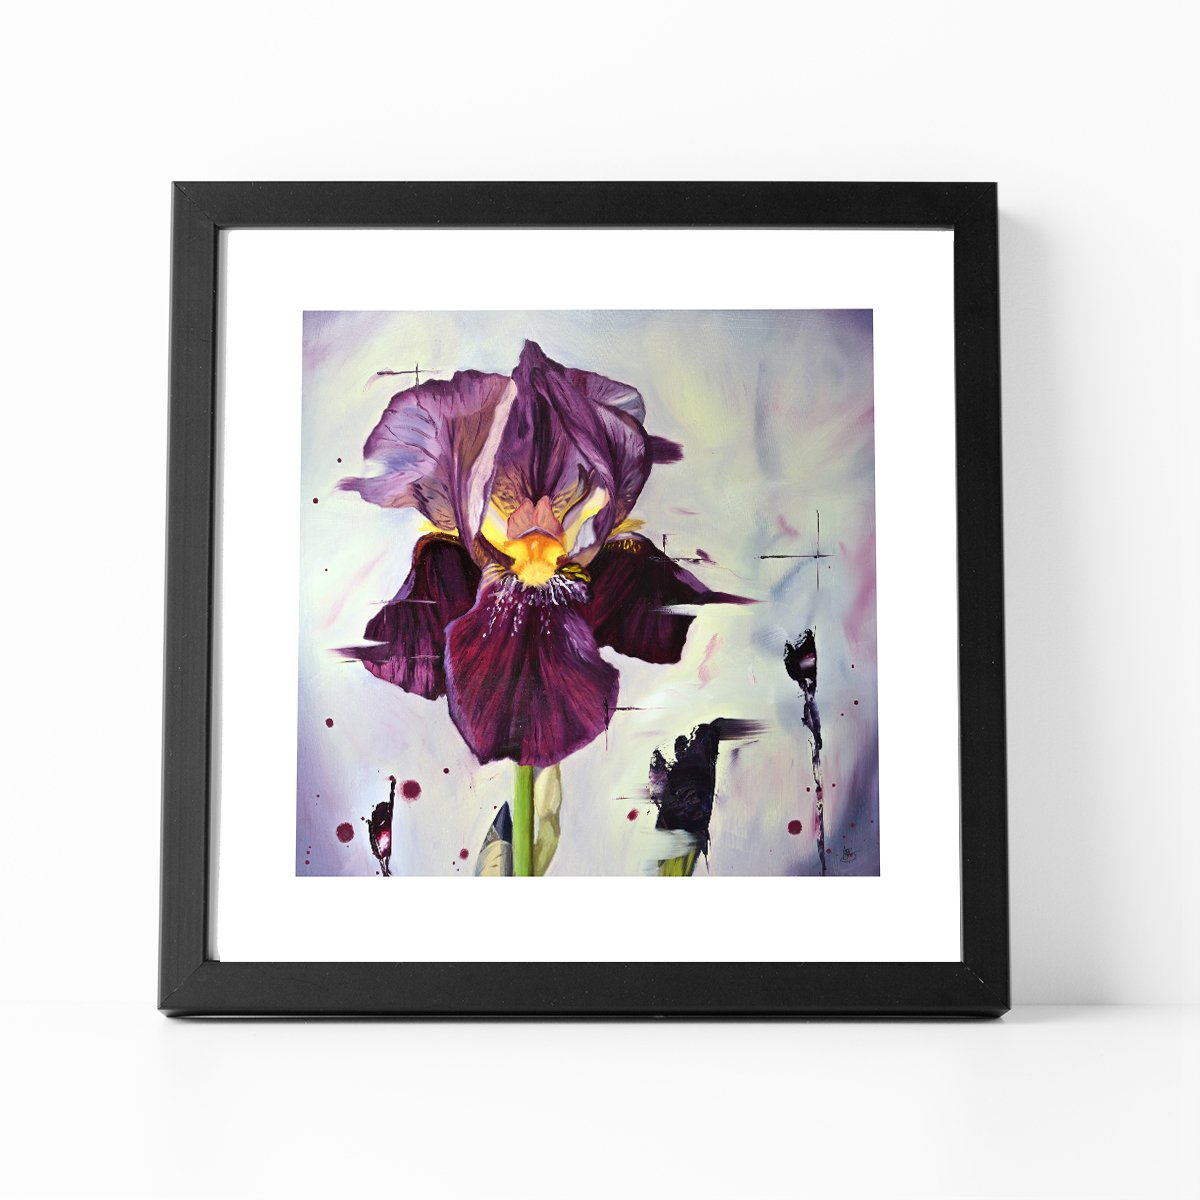 Dark Magic framed print